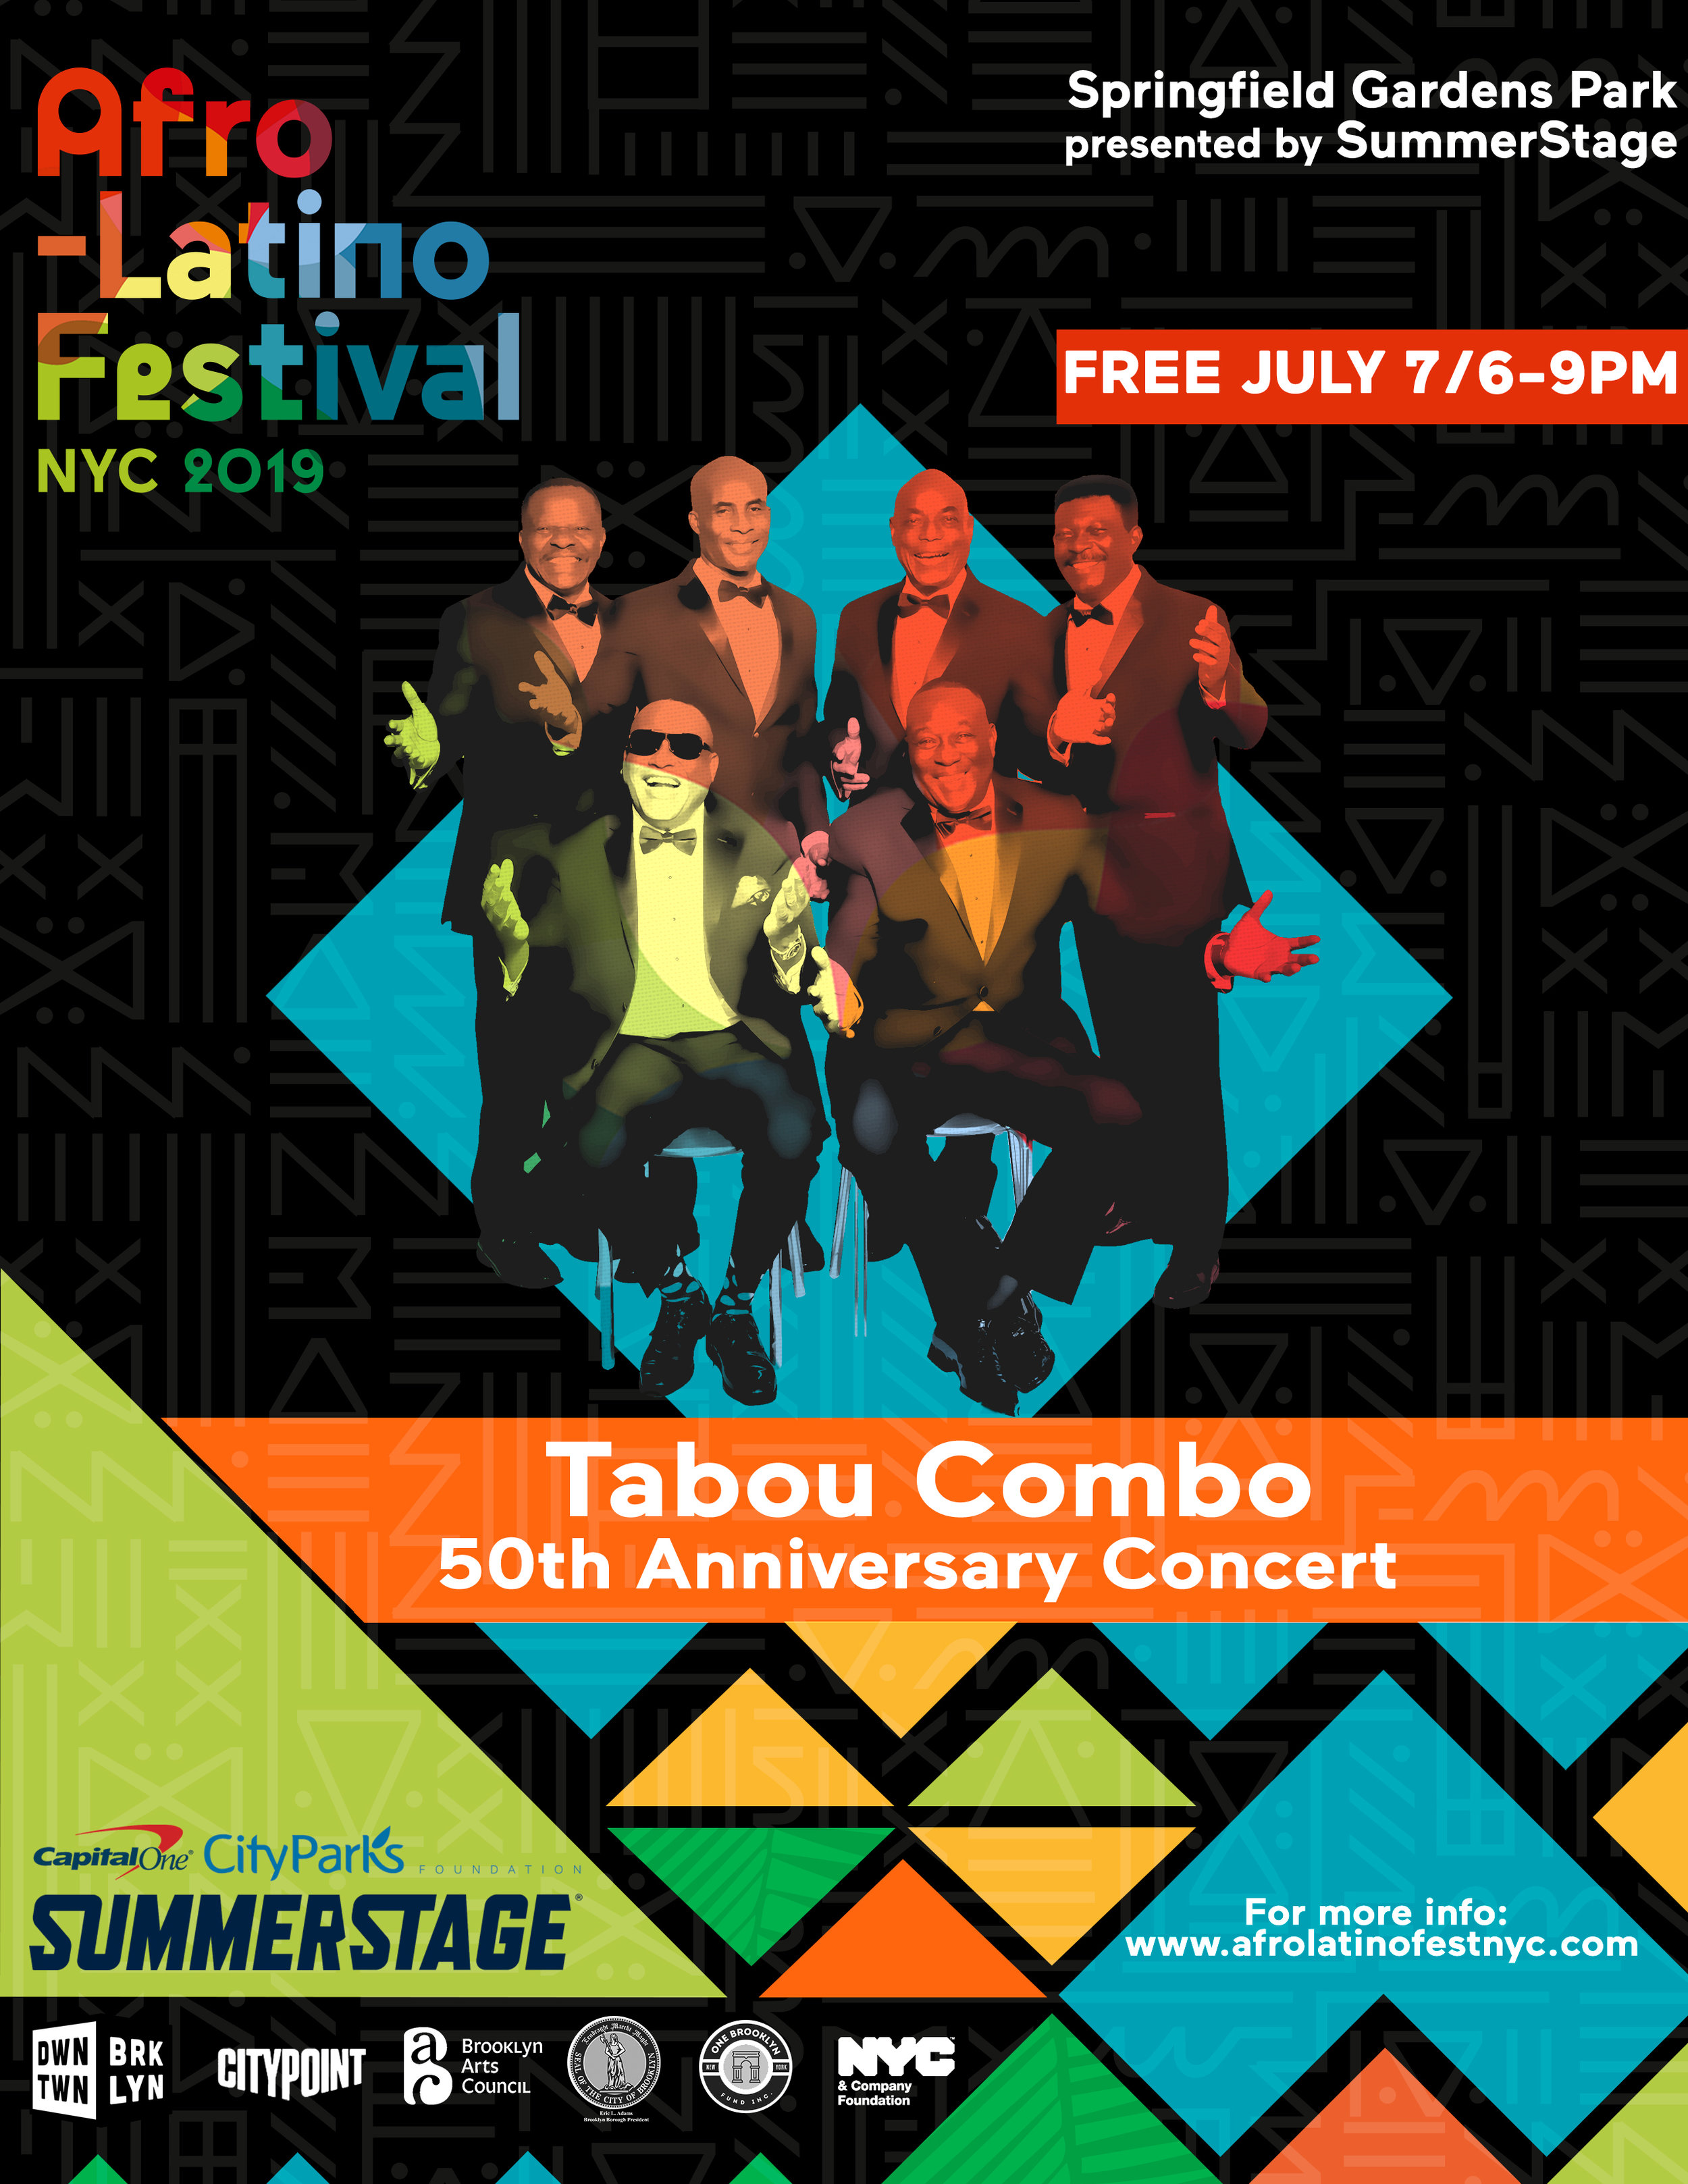 Pre-Festival Sunday with Legends - With scores of hits spanning generations Haiti's Tabou Combo are loved by many. Be sure to head out to Queens for this special performance along with Lakou Mizik and DJ Sabine Blaizin. We will have a limited number of specially priced July 12-13 tickets available for purchase on site.